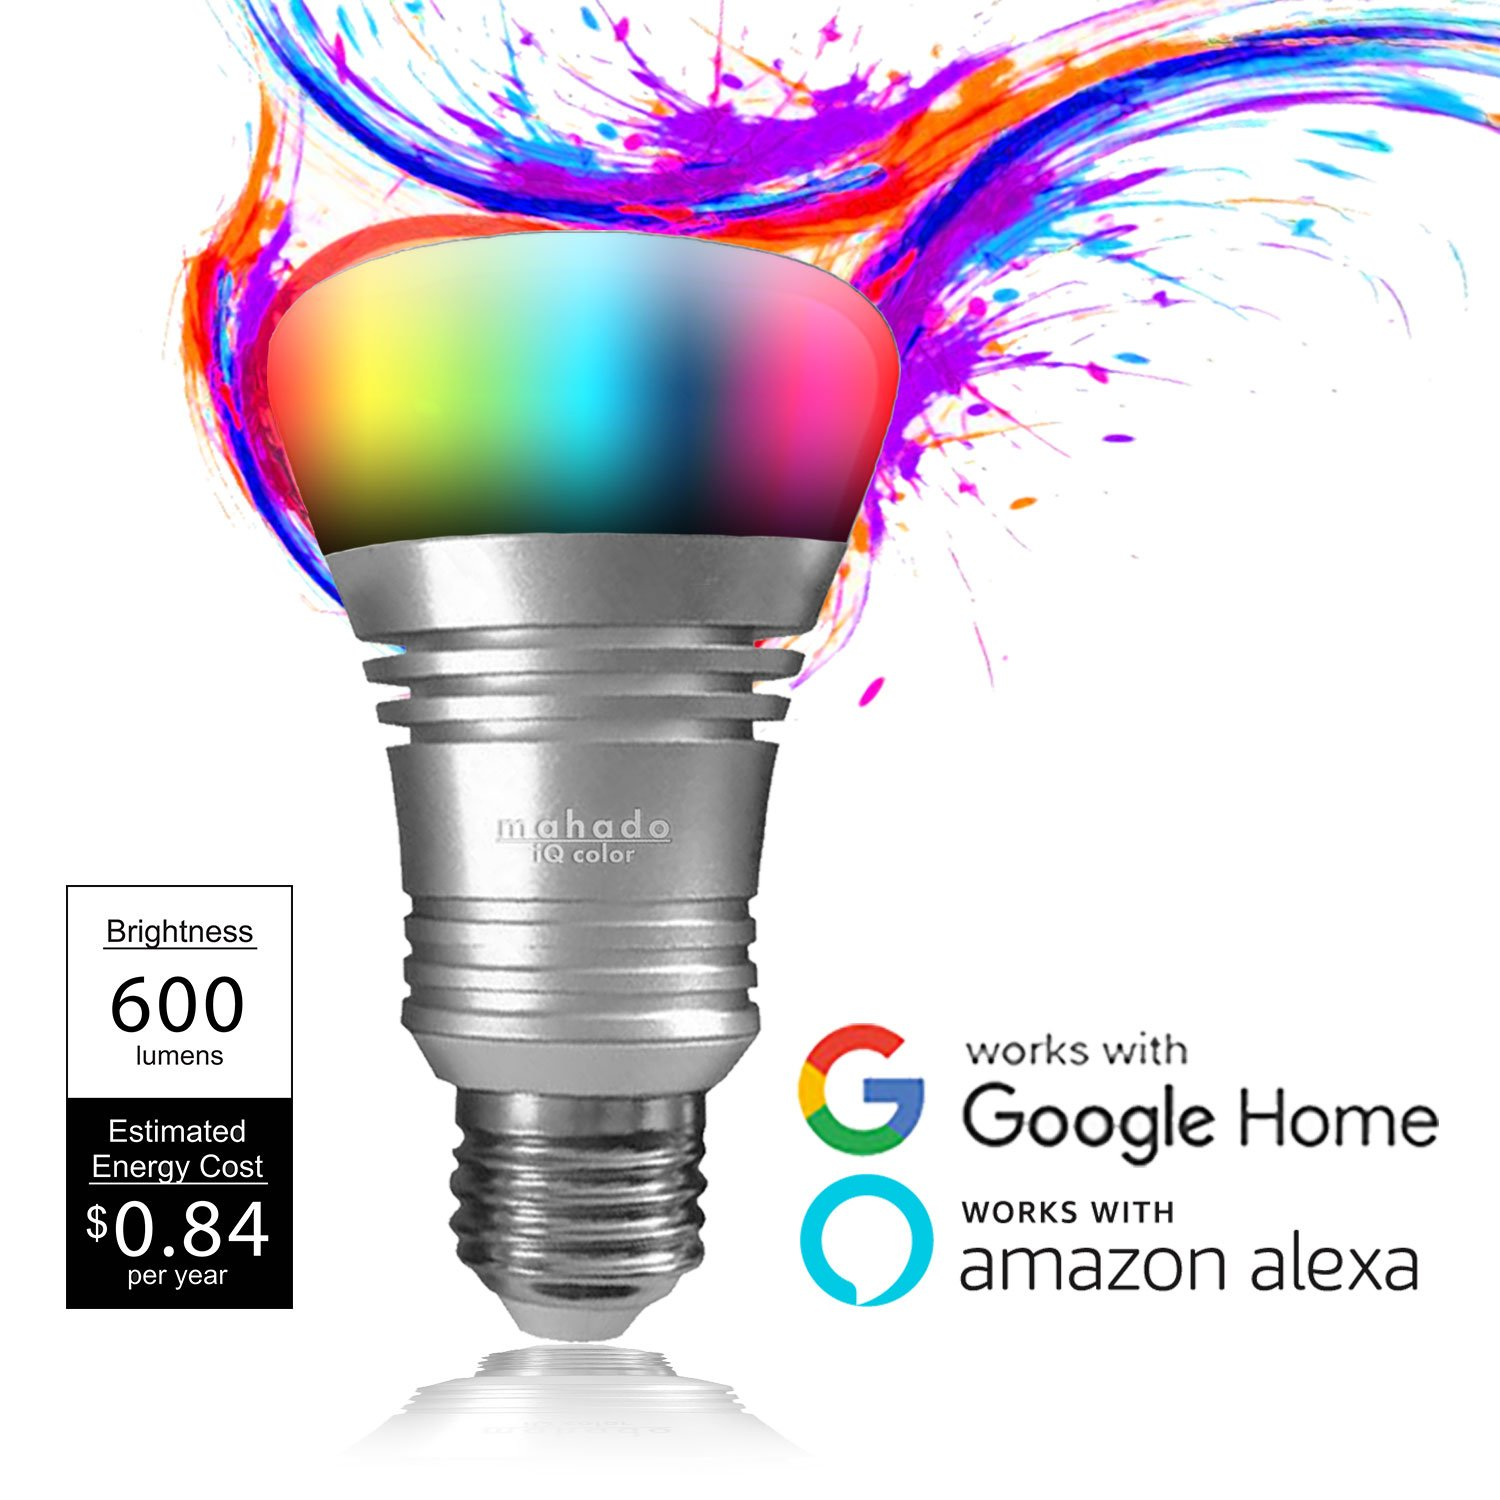 Color WiFi LED Smart Light Bulb | 7w Smart LED Bulbs Work with Alexa, Google Assistant, and IFTTT | Dimmable WiFi Smart Light | No Hub Required for Colored Alexa Smart Bulb | by Mahado (1 Pack 7w)